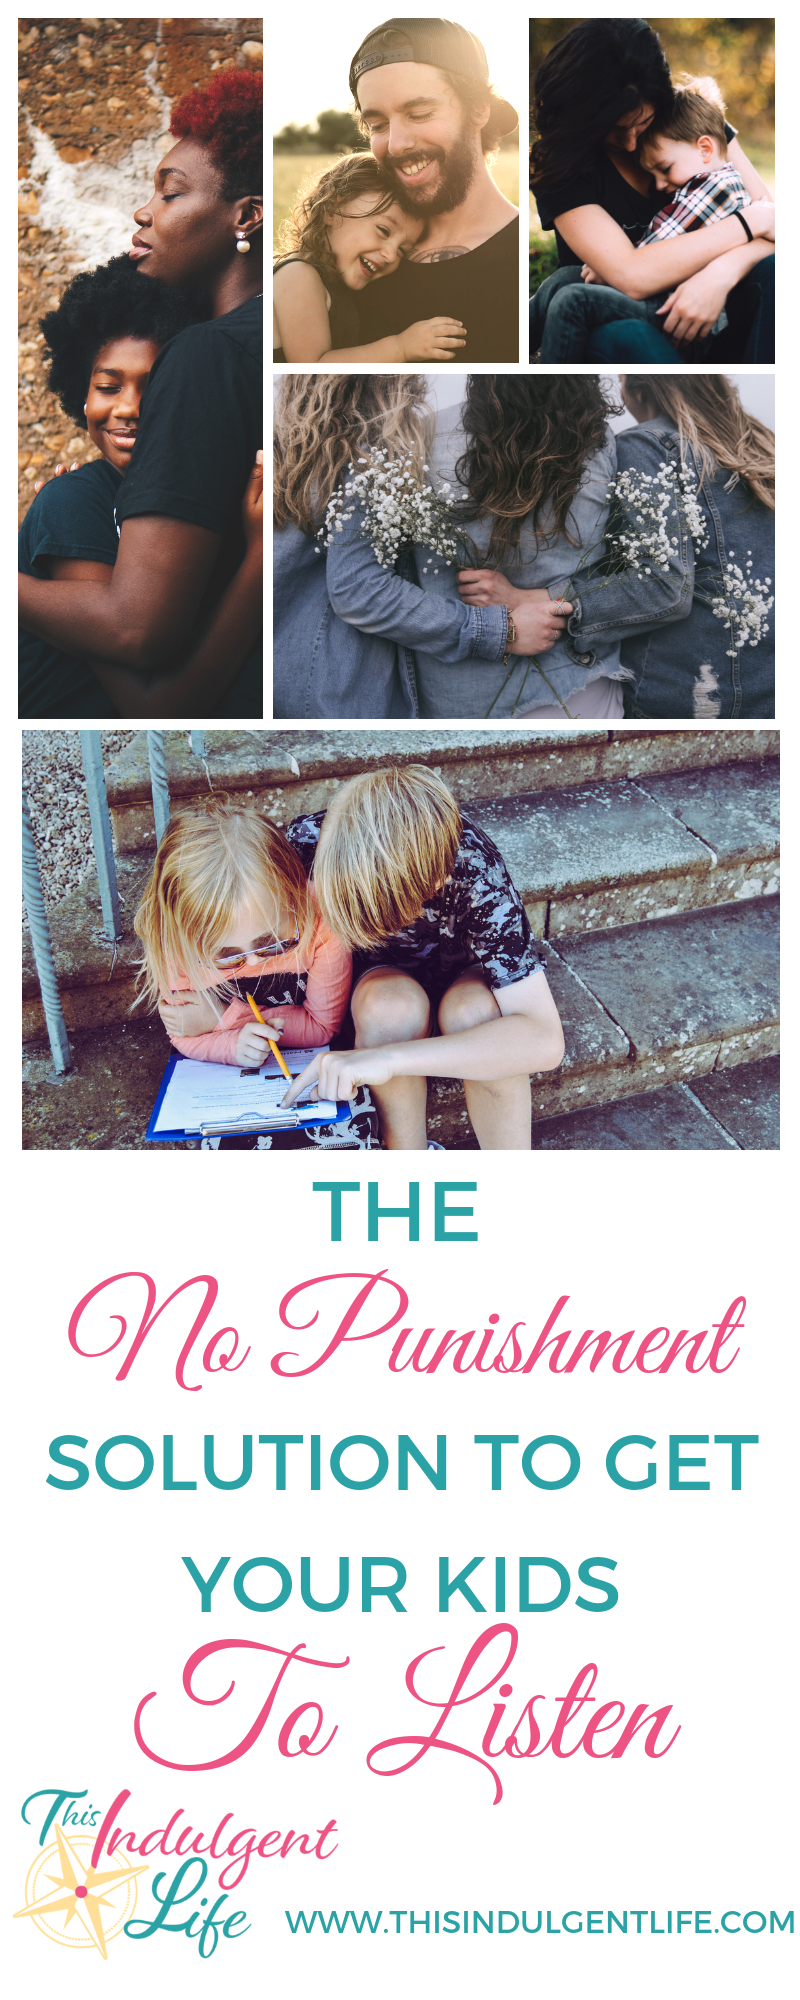 The No Punishment Solution To Getting Kids To Listen | This Indulgent Life | Science shows punishments don't work in the long run, so what else is there? Click the pin to read my review of How To Talk So Little Kids WIll Listen Chapter 3: Tools For Resolving Conflict. Get the tools you need to prevent power struggles. | #Gentleparenting #parentingadvice #parentinghacks #toddlertantrums #childbehavior #toddlerbehavior #respectfulparenting #childdiscipline #punishment #discipline